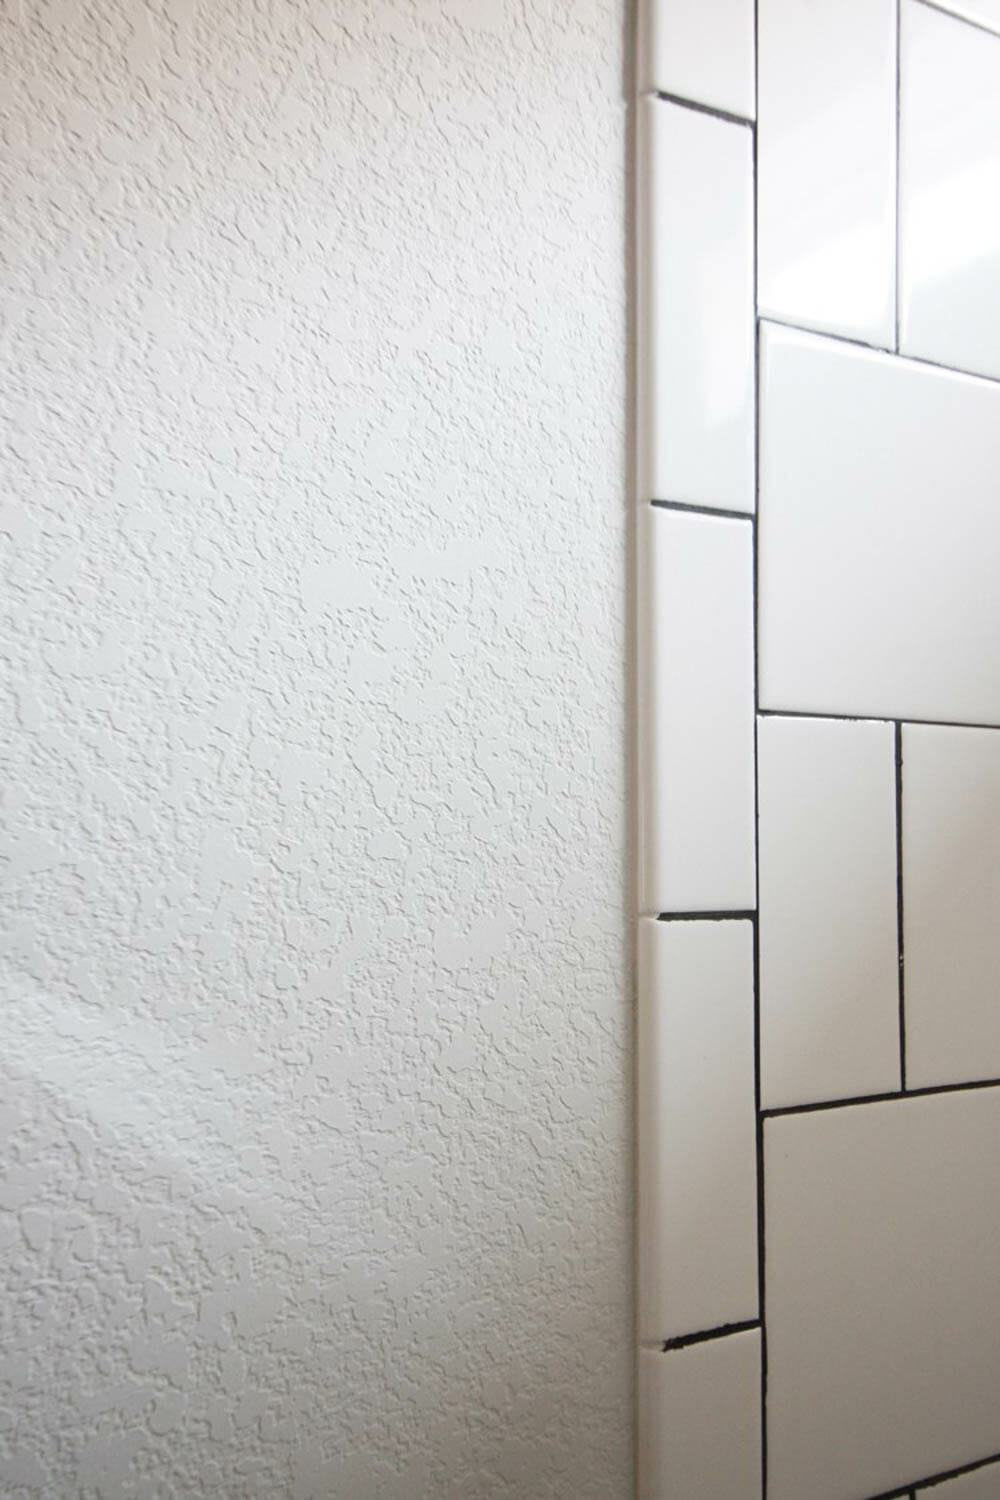 Bathroom Wall Texture how to smooth textured walls with a skim coat - modernize